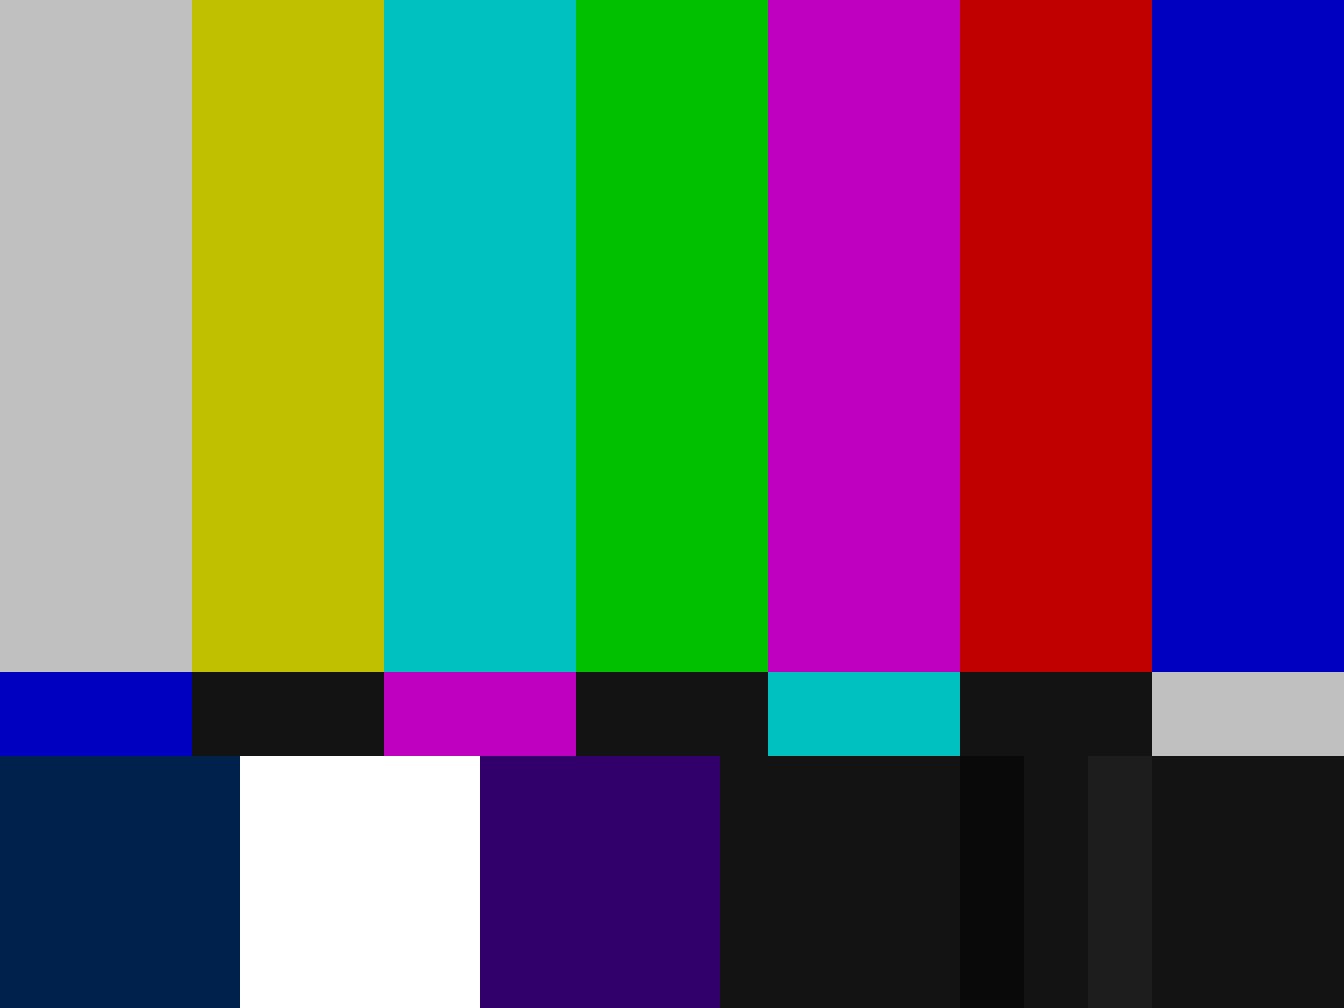 smpte_color_bars